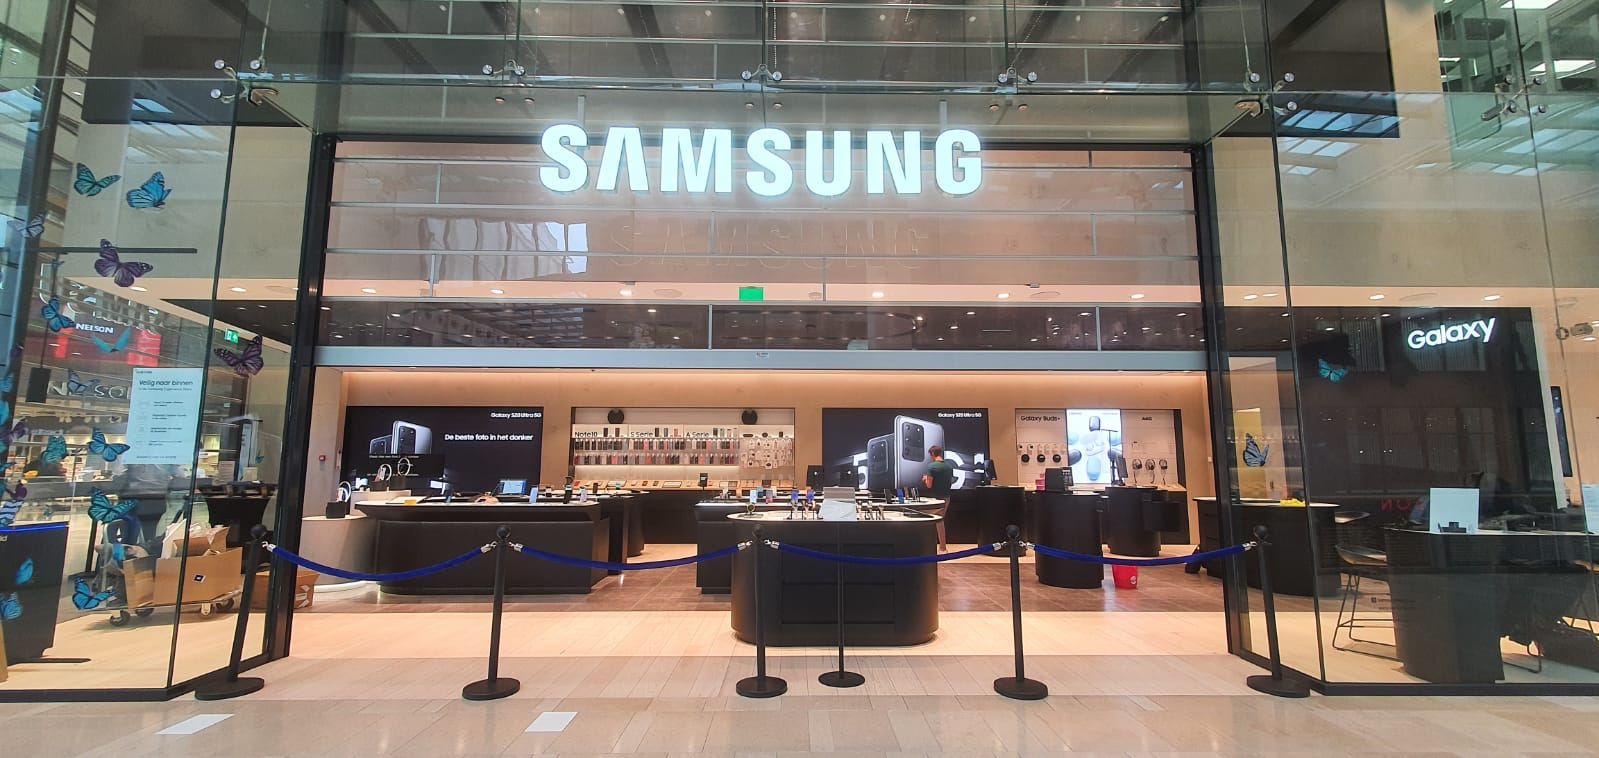 Preparing for the opening of Samsung Experience Store after COVID-19